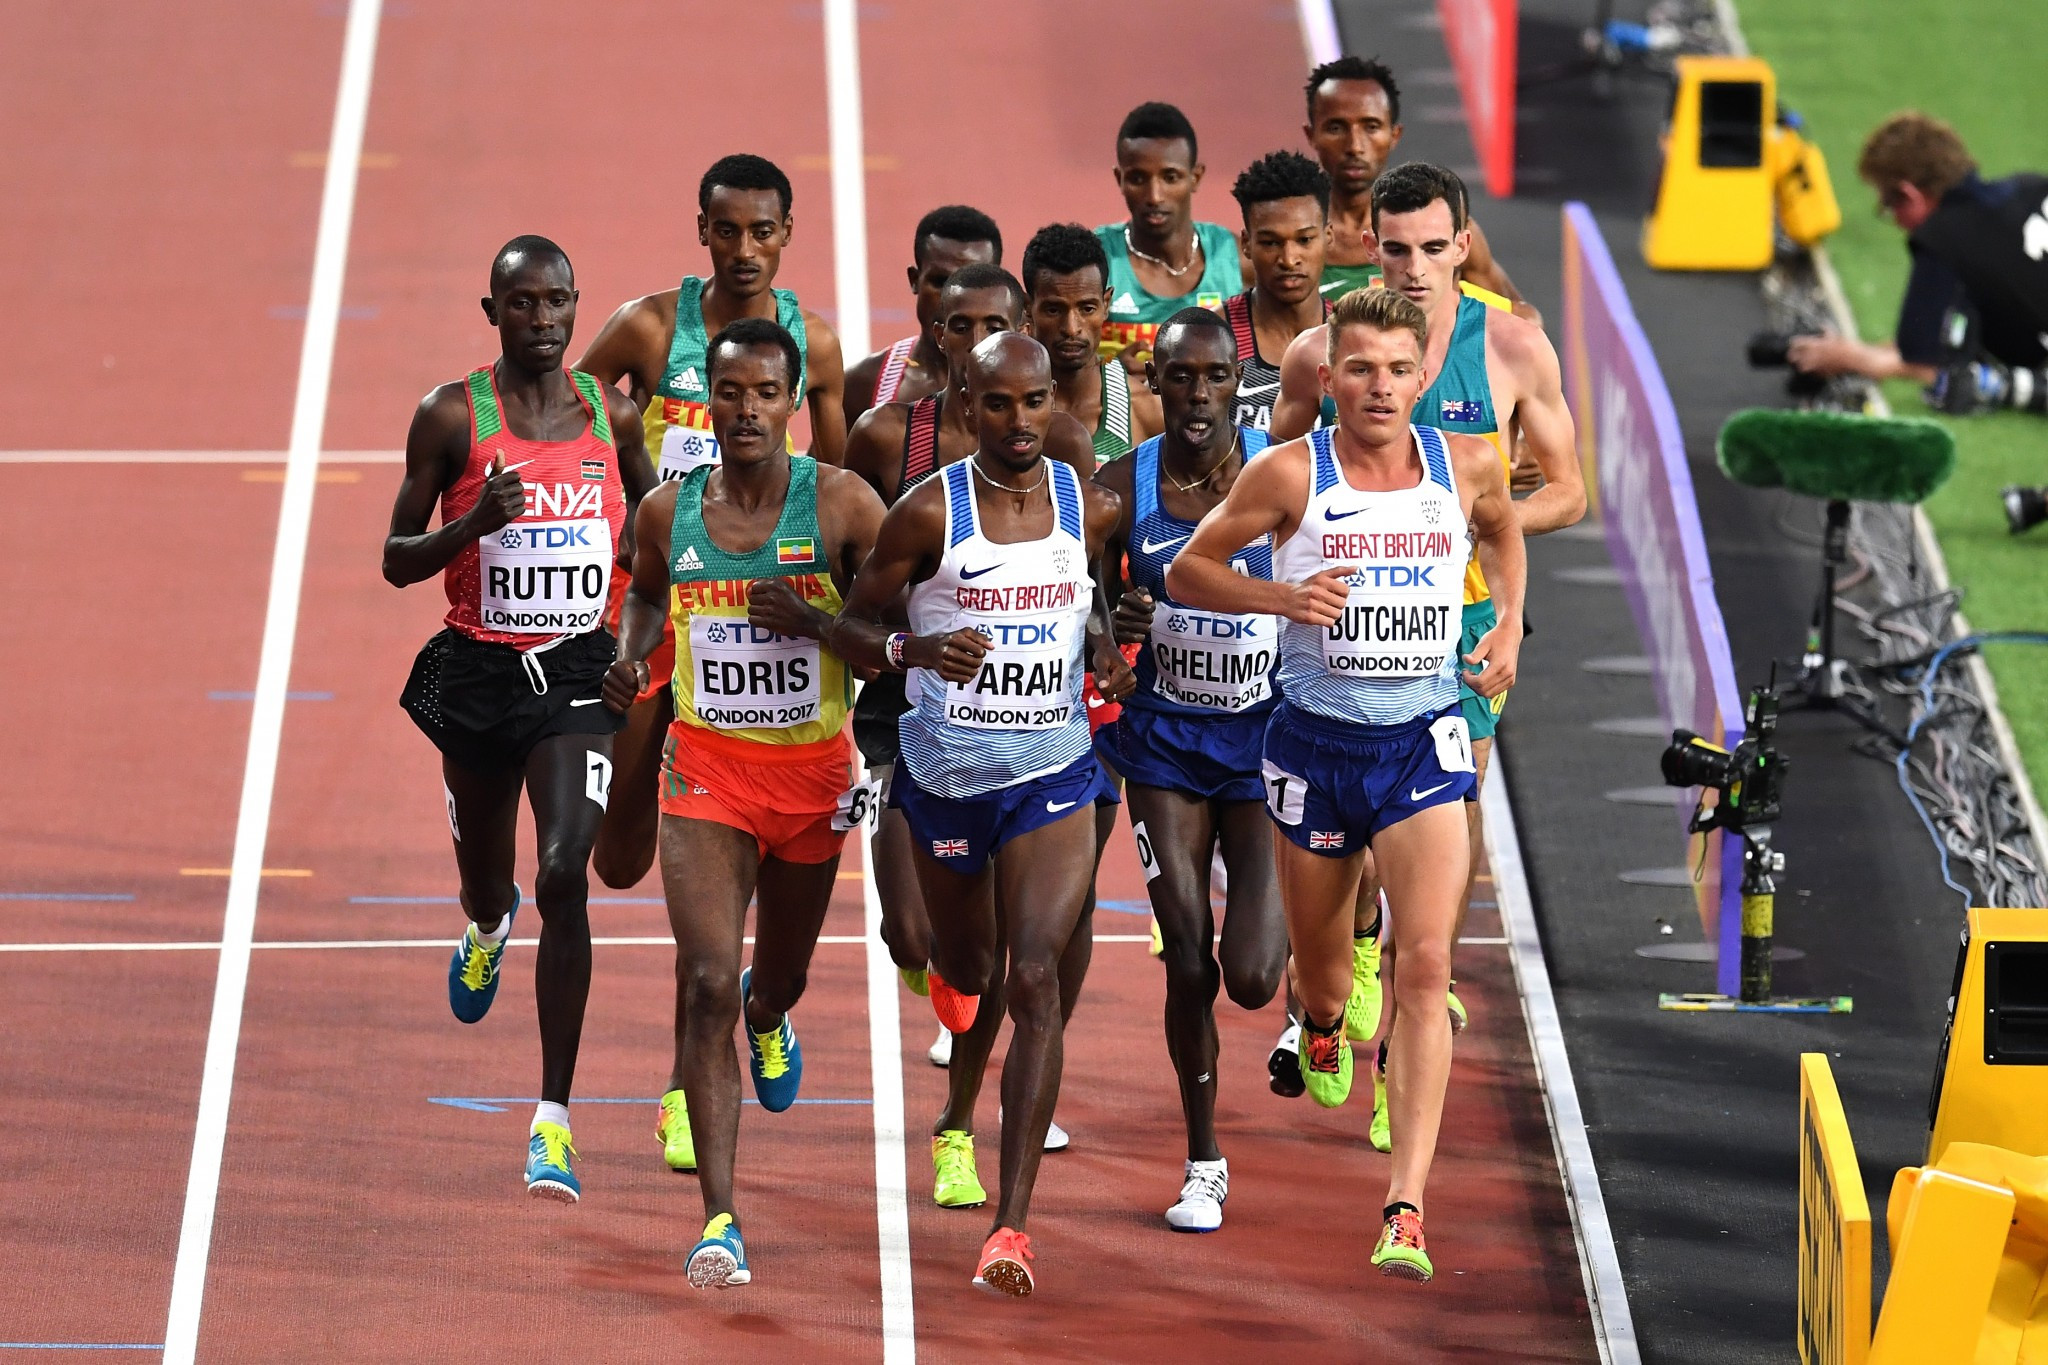 Sir Mo Farah took to the track in his final major race ©Getty Images